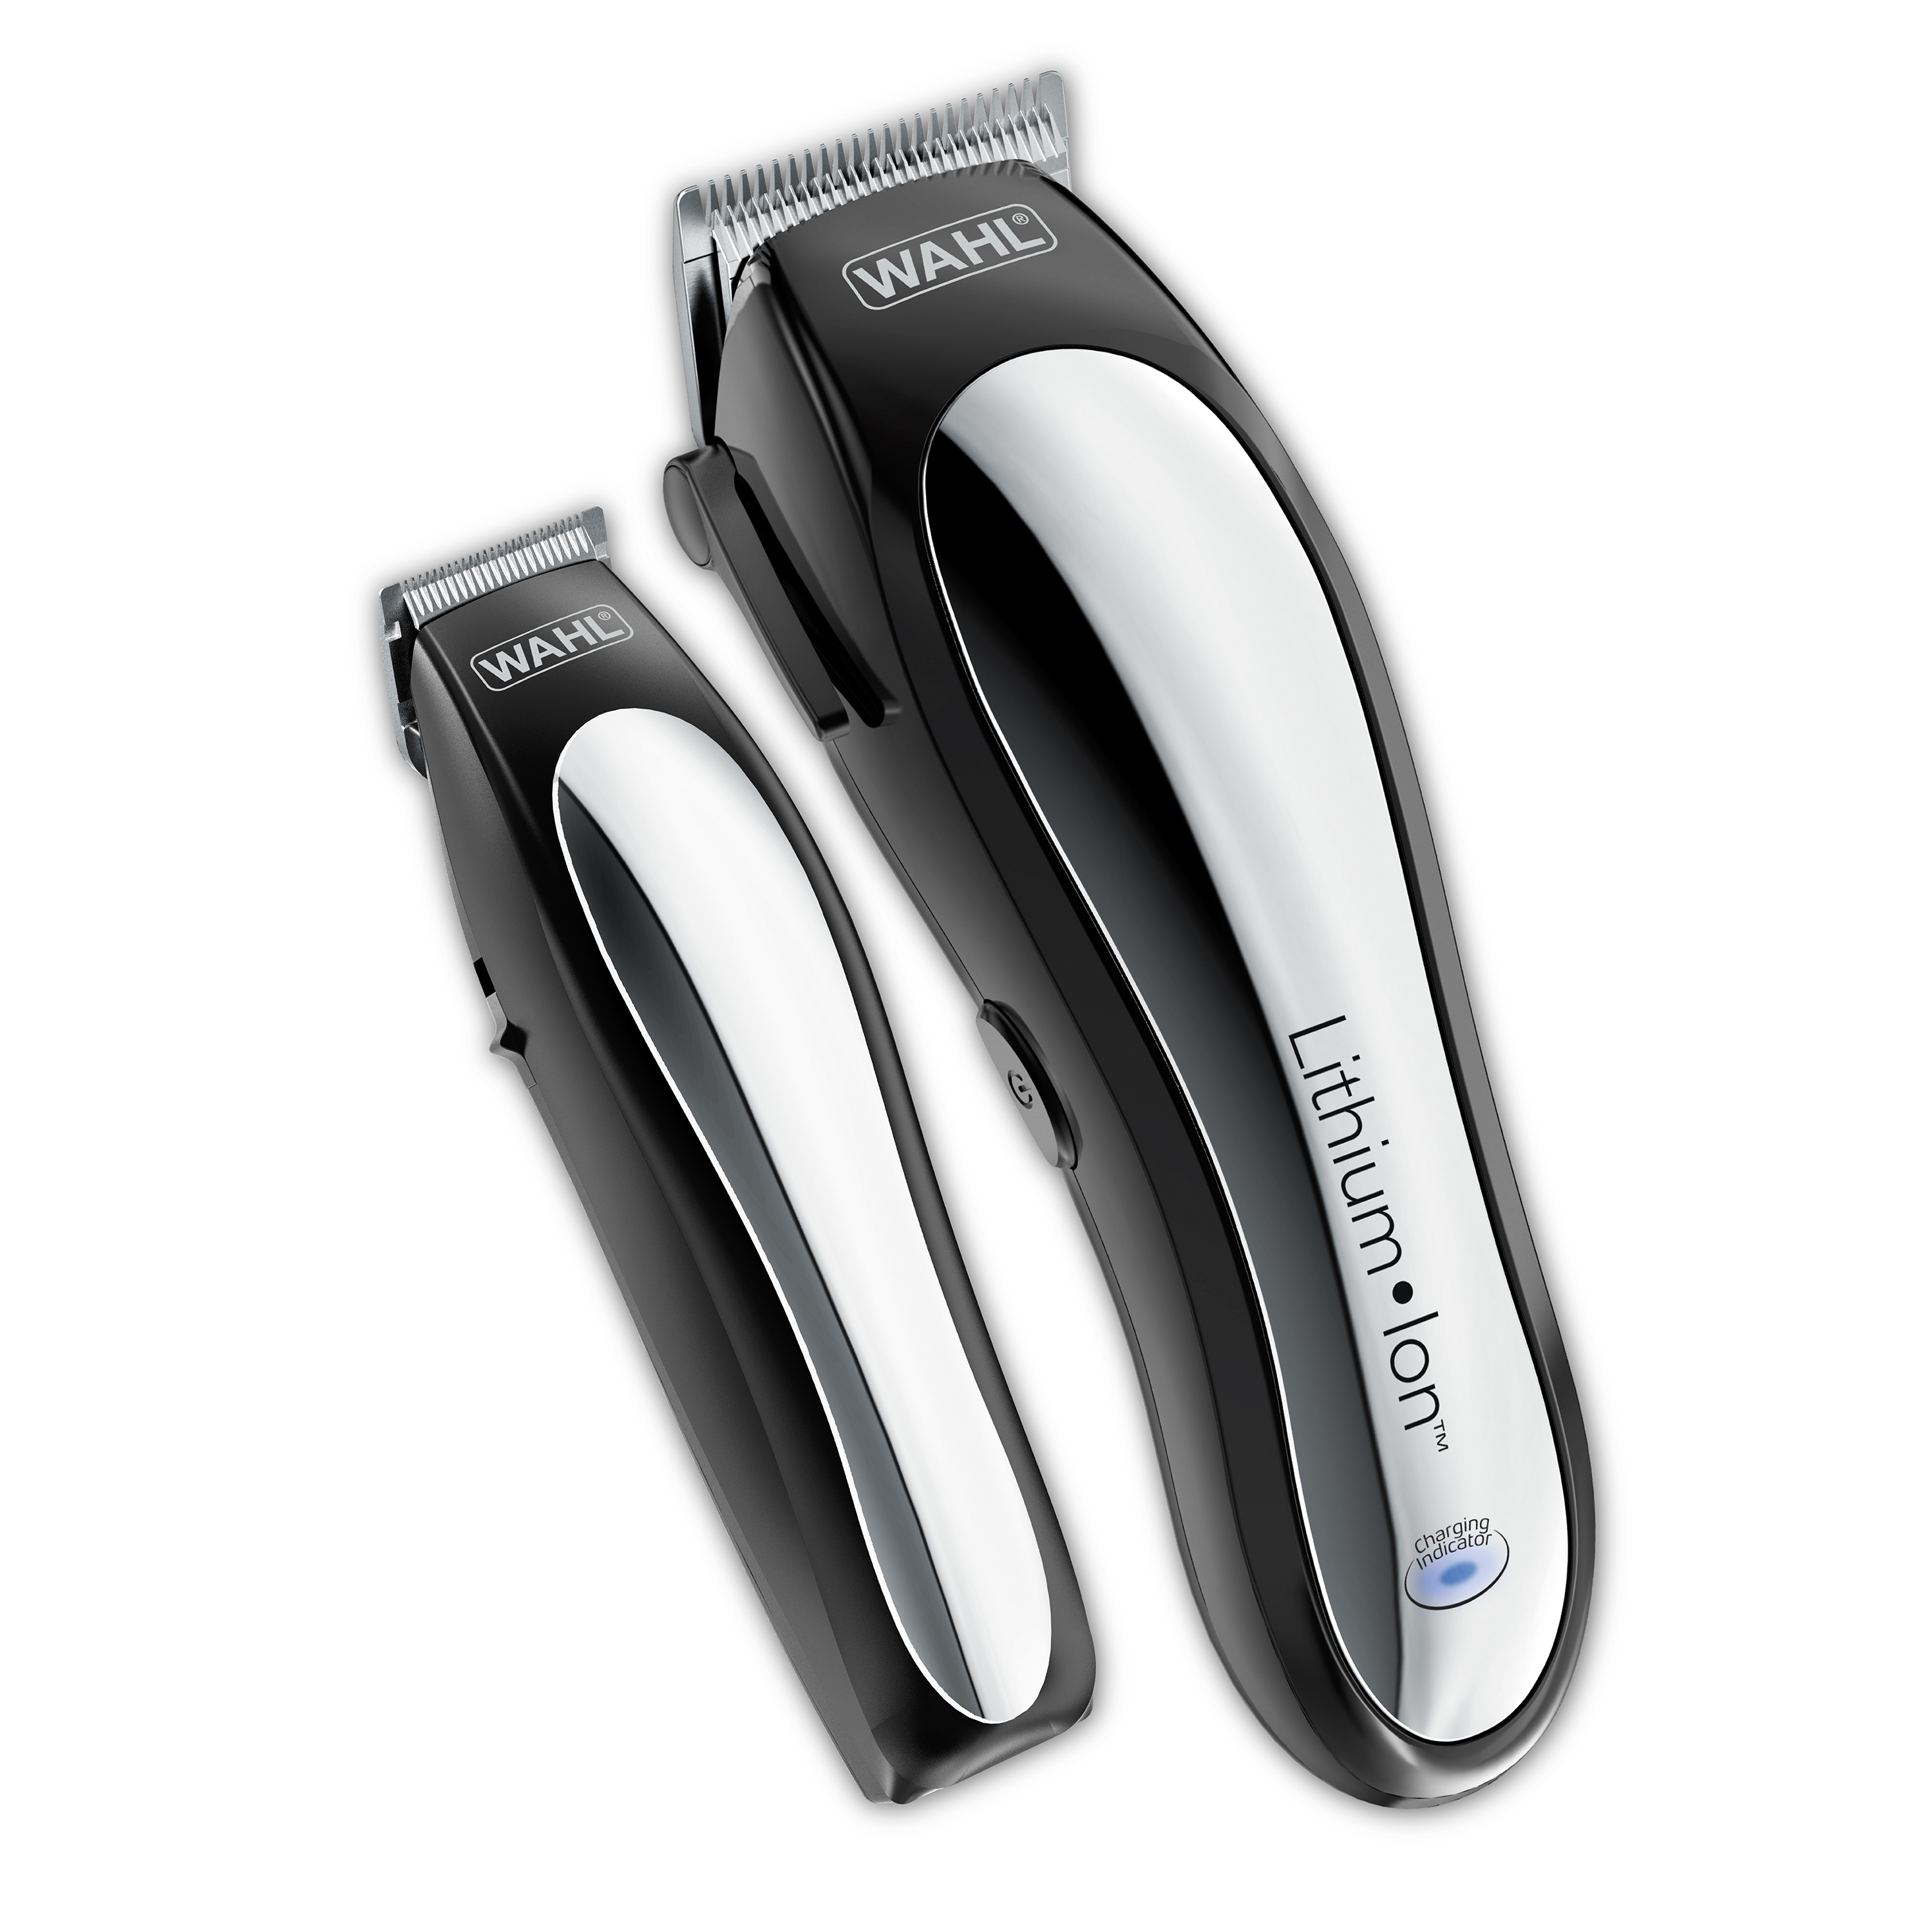 Wahl Lithium Pro Complete Cordless Hair Clipper & Touch Up Kit